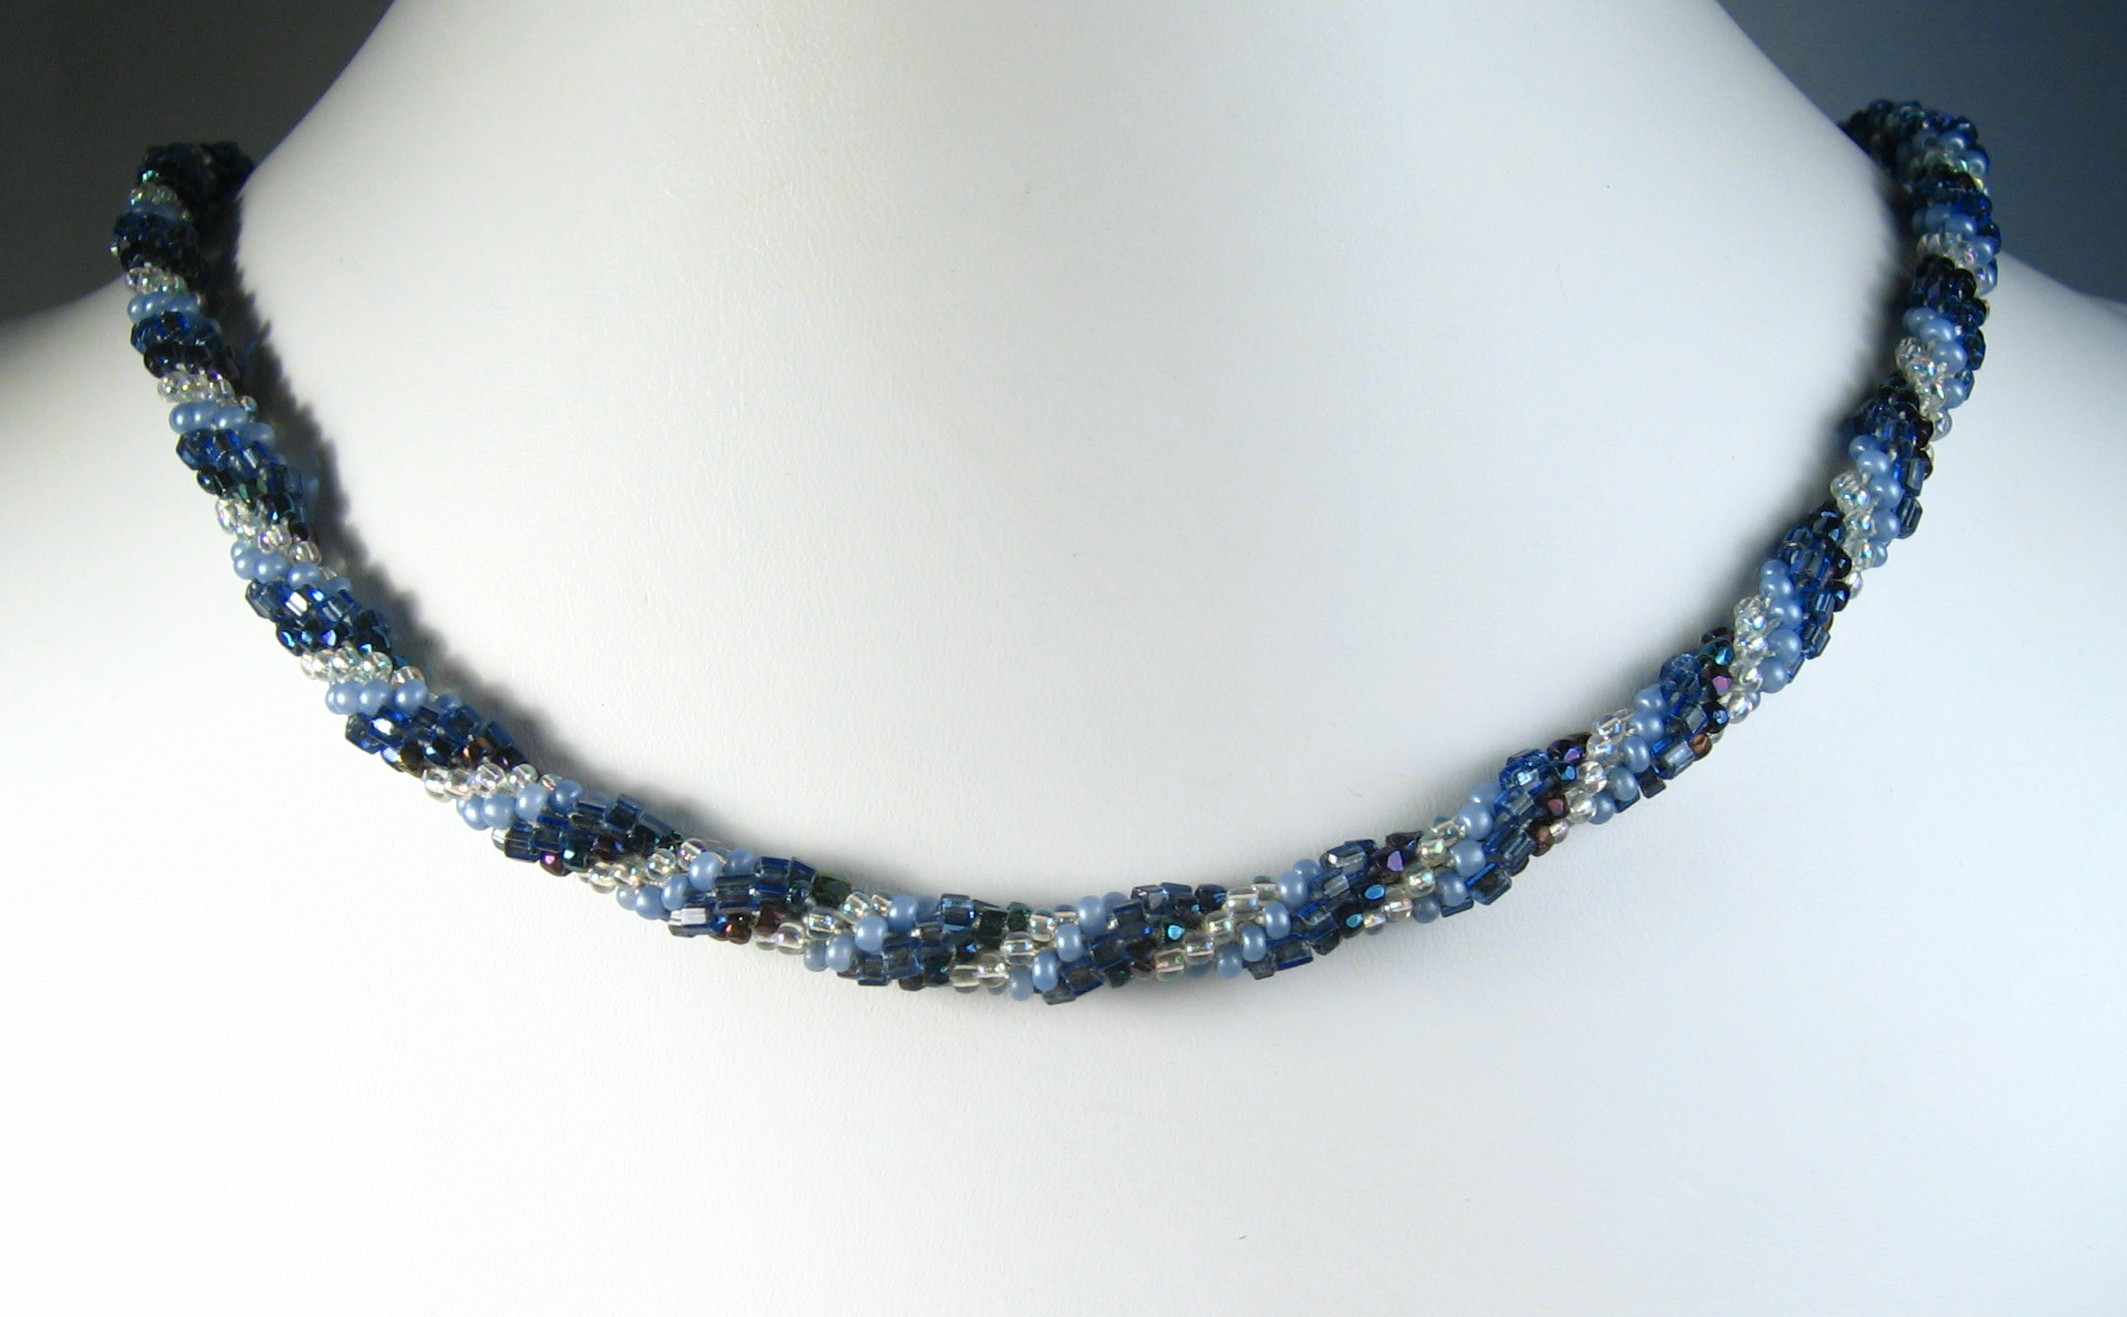 Hand Crocheted Blues Glass Seed Bead Necklace, Lyns Jewelry